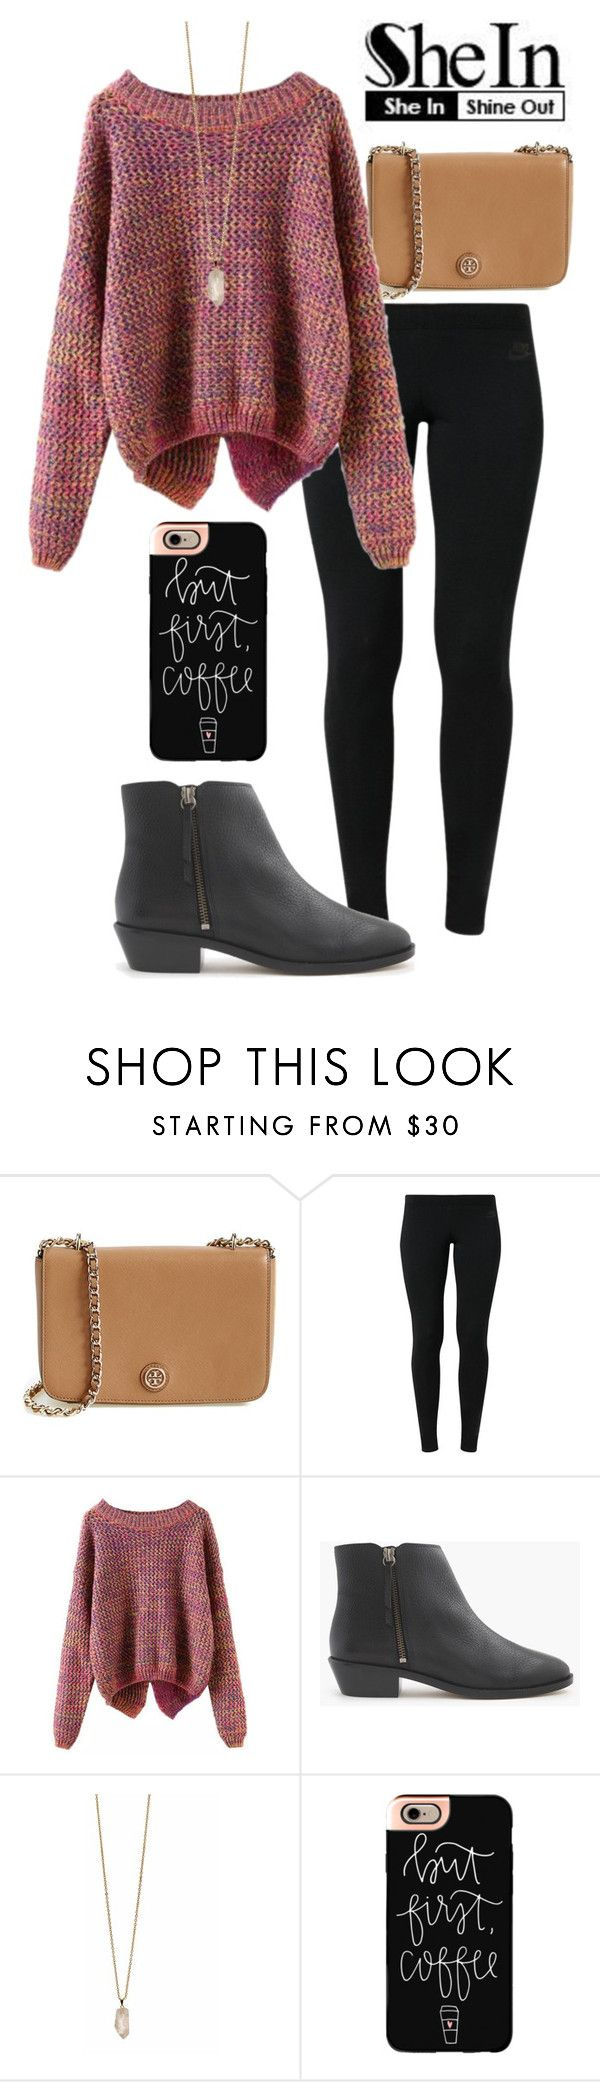 """SheIn"" by madelyn-abigail ❤ liked on Polyvore featuring Tory Burch, NIKE, J.Crew, Zoya, Casetify, women's clothing, women's fashion, women, female and woman"